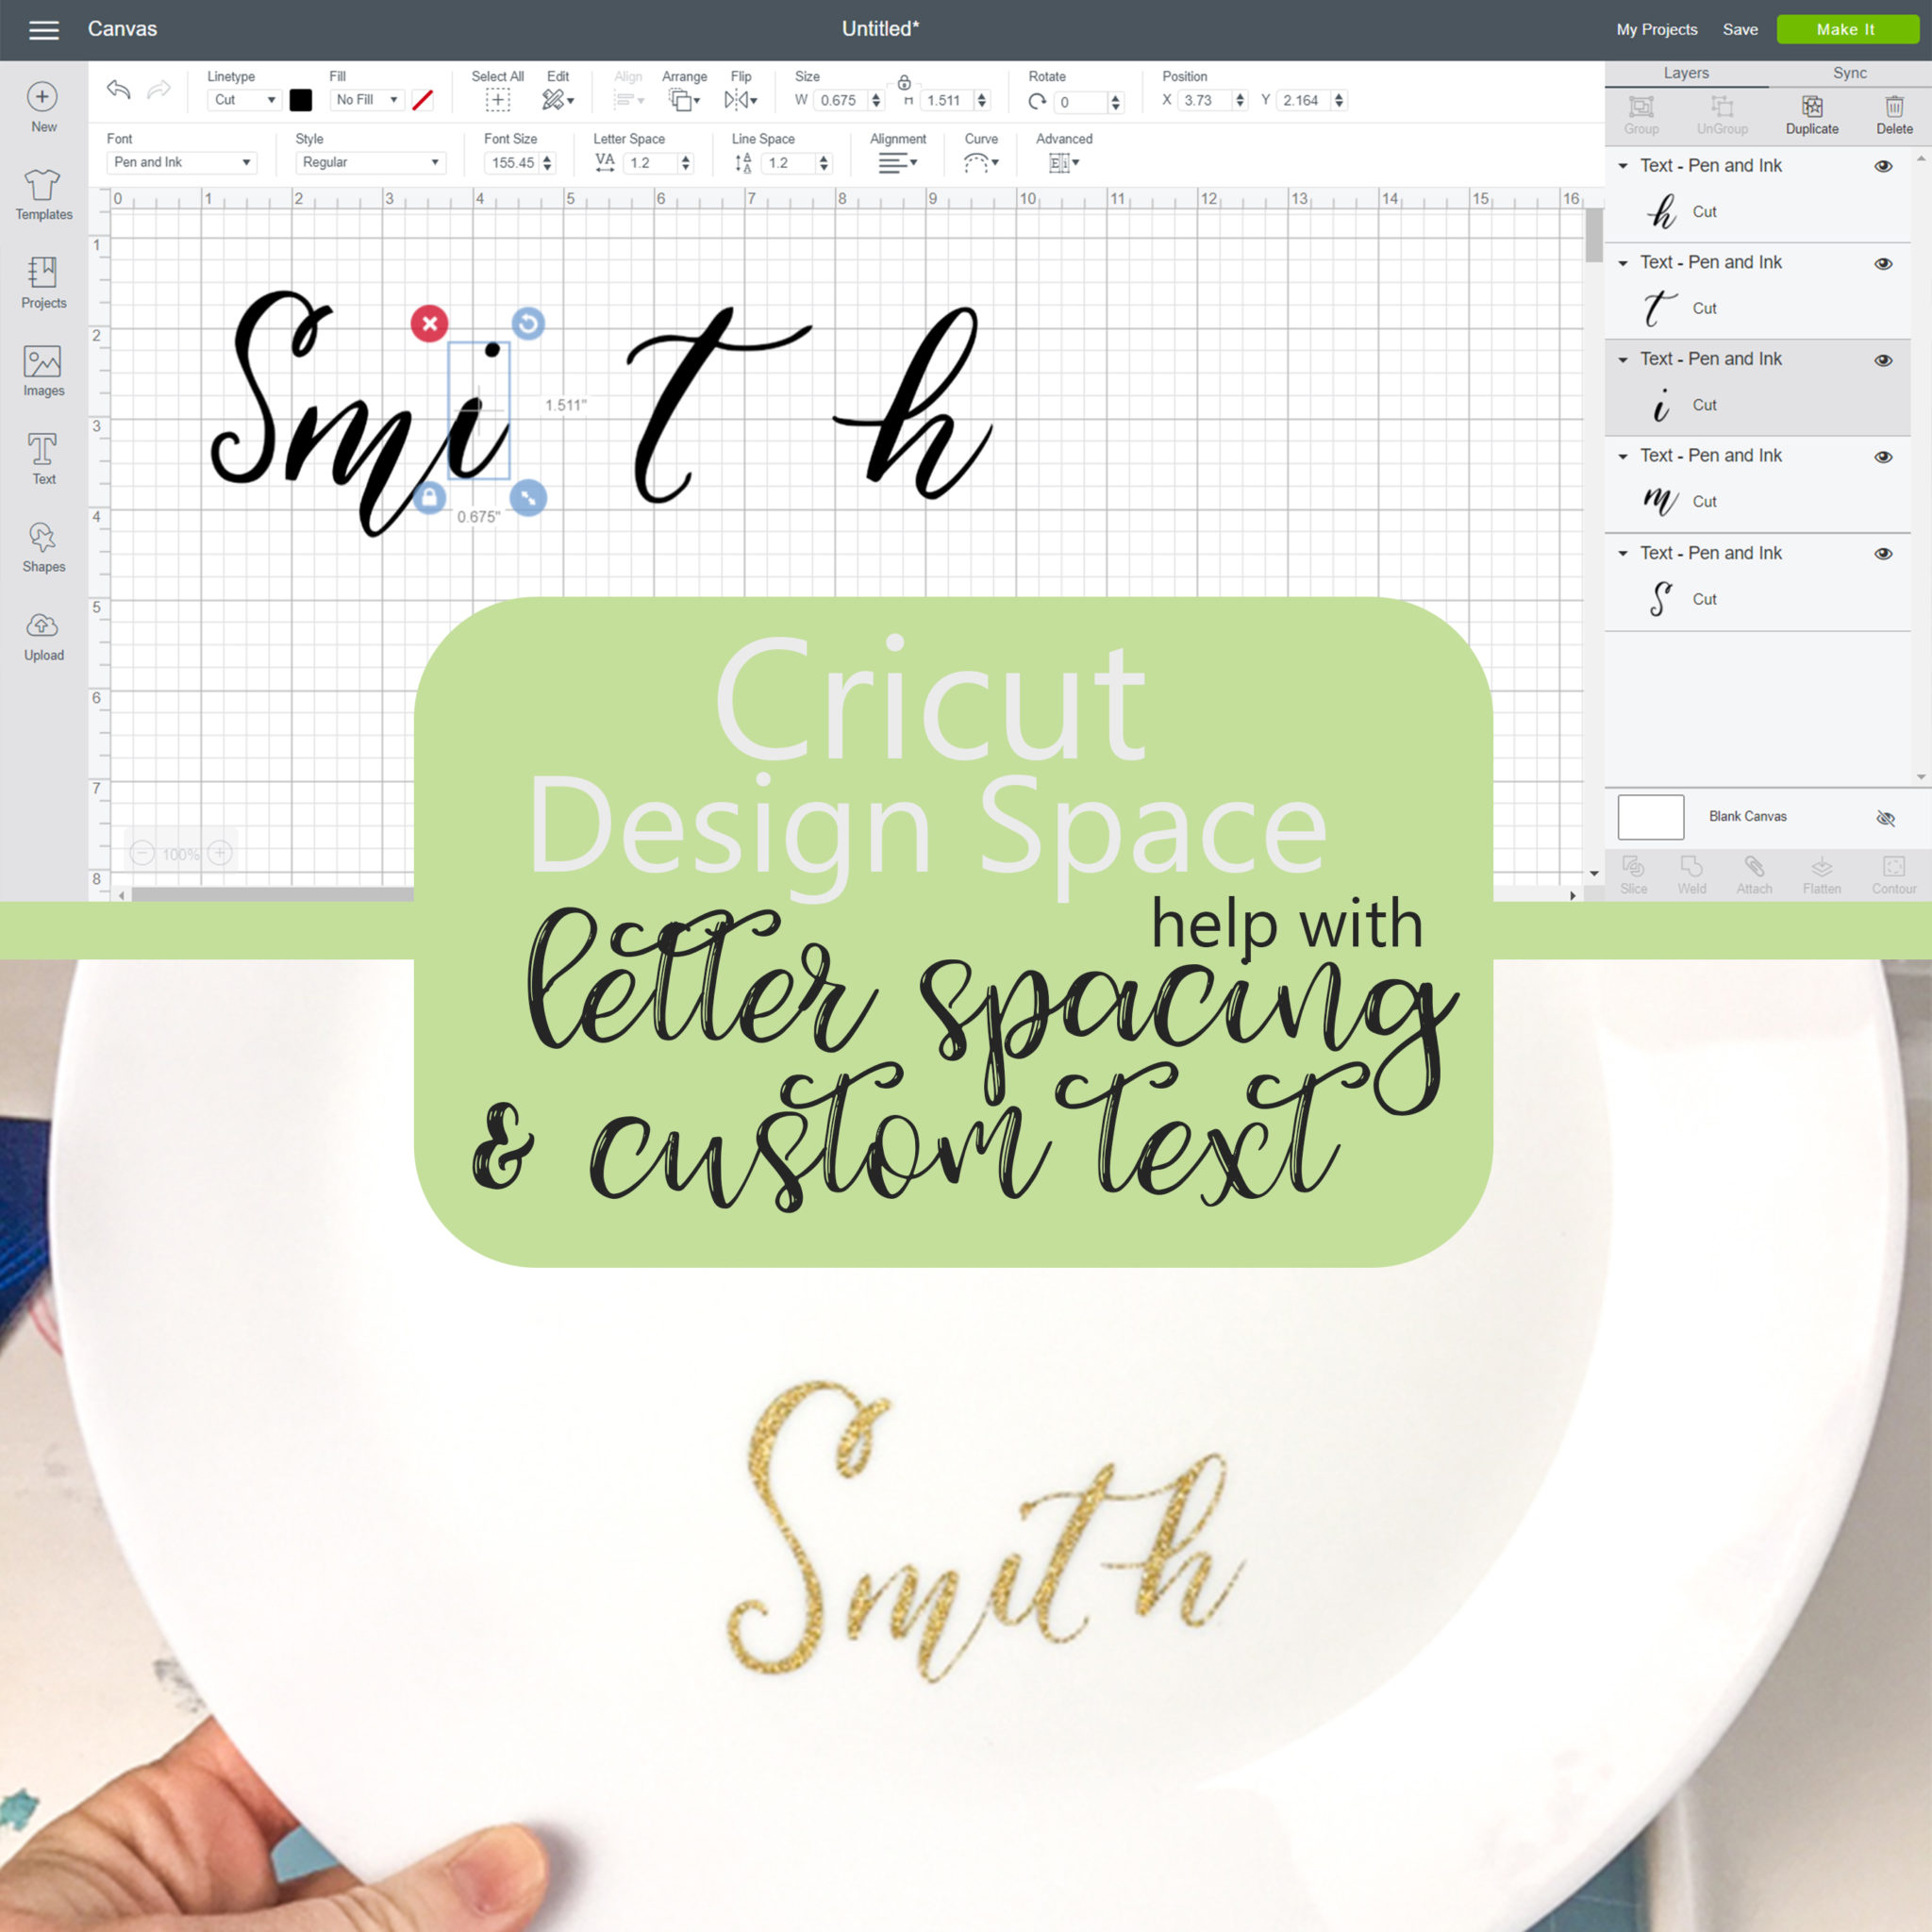 Cricut Design Space Help - Berkshireregion